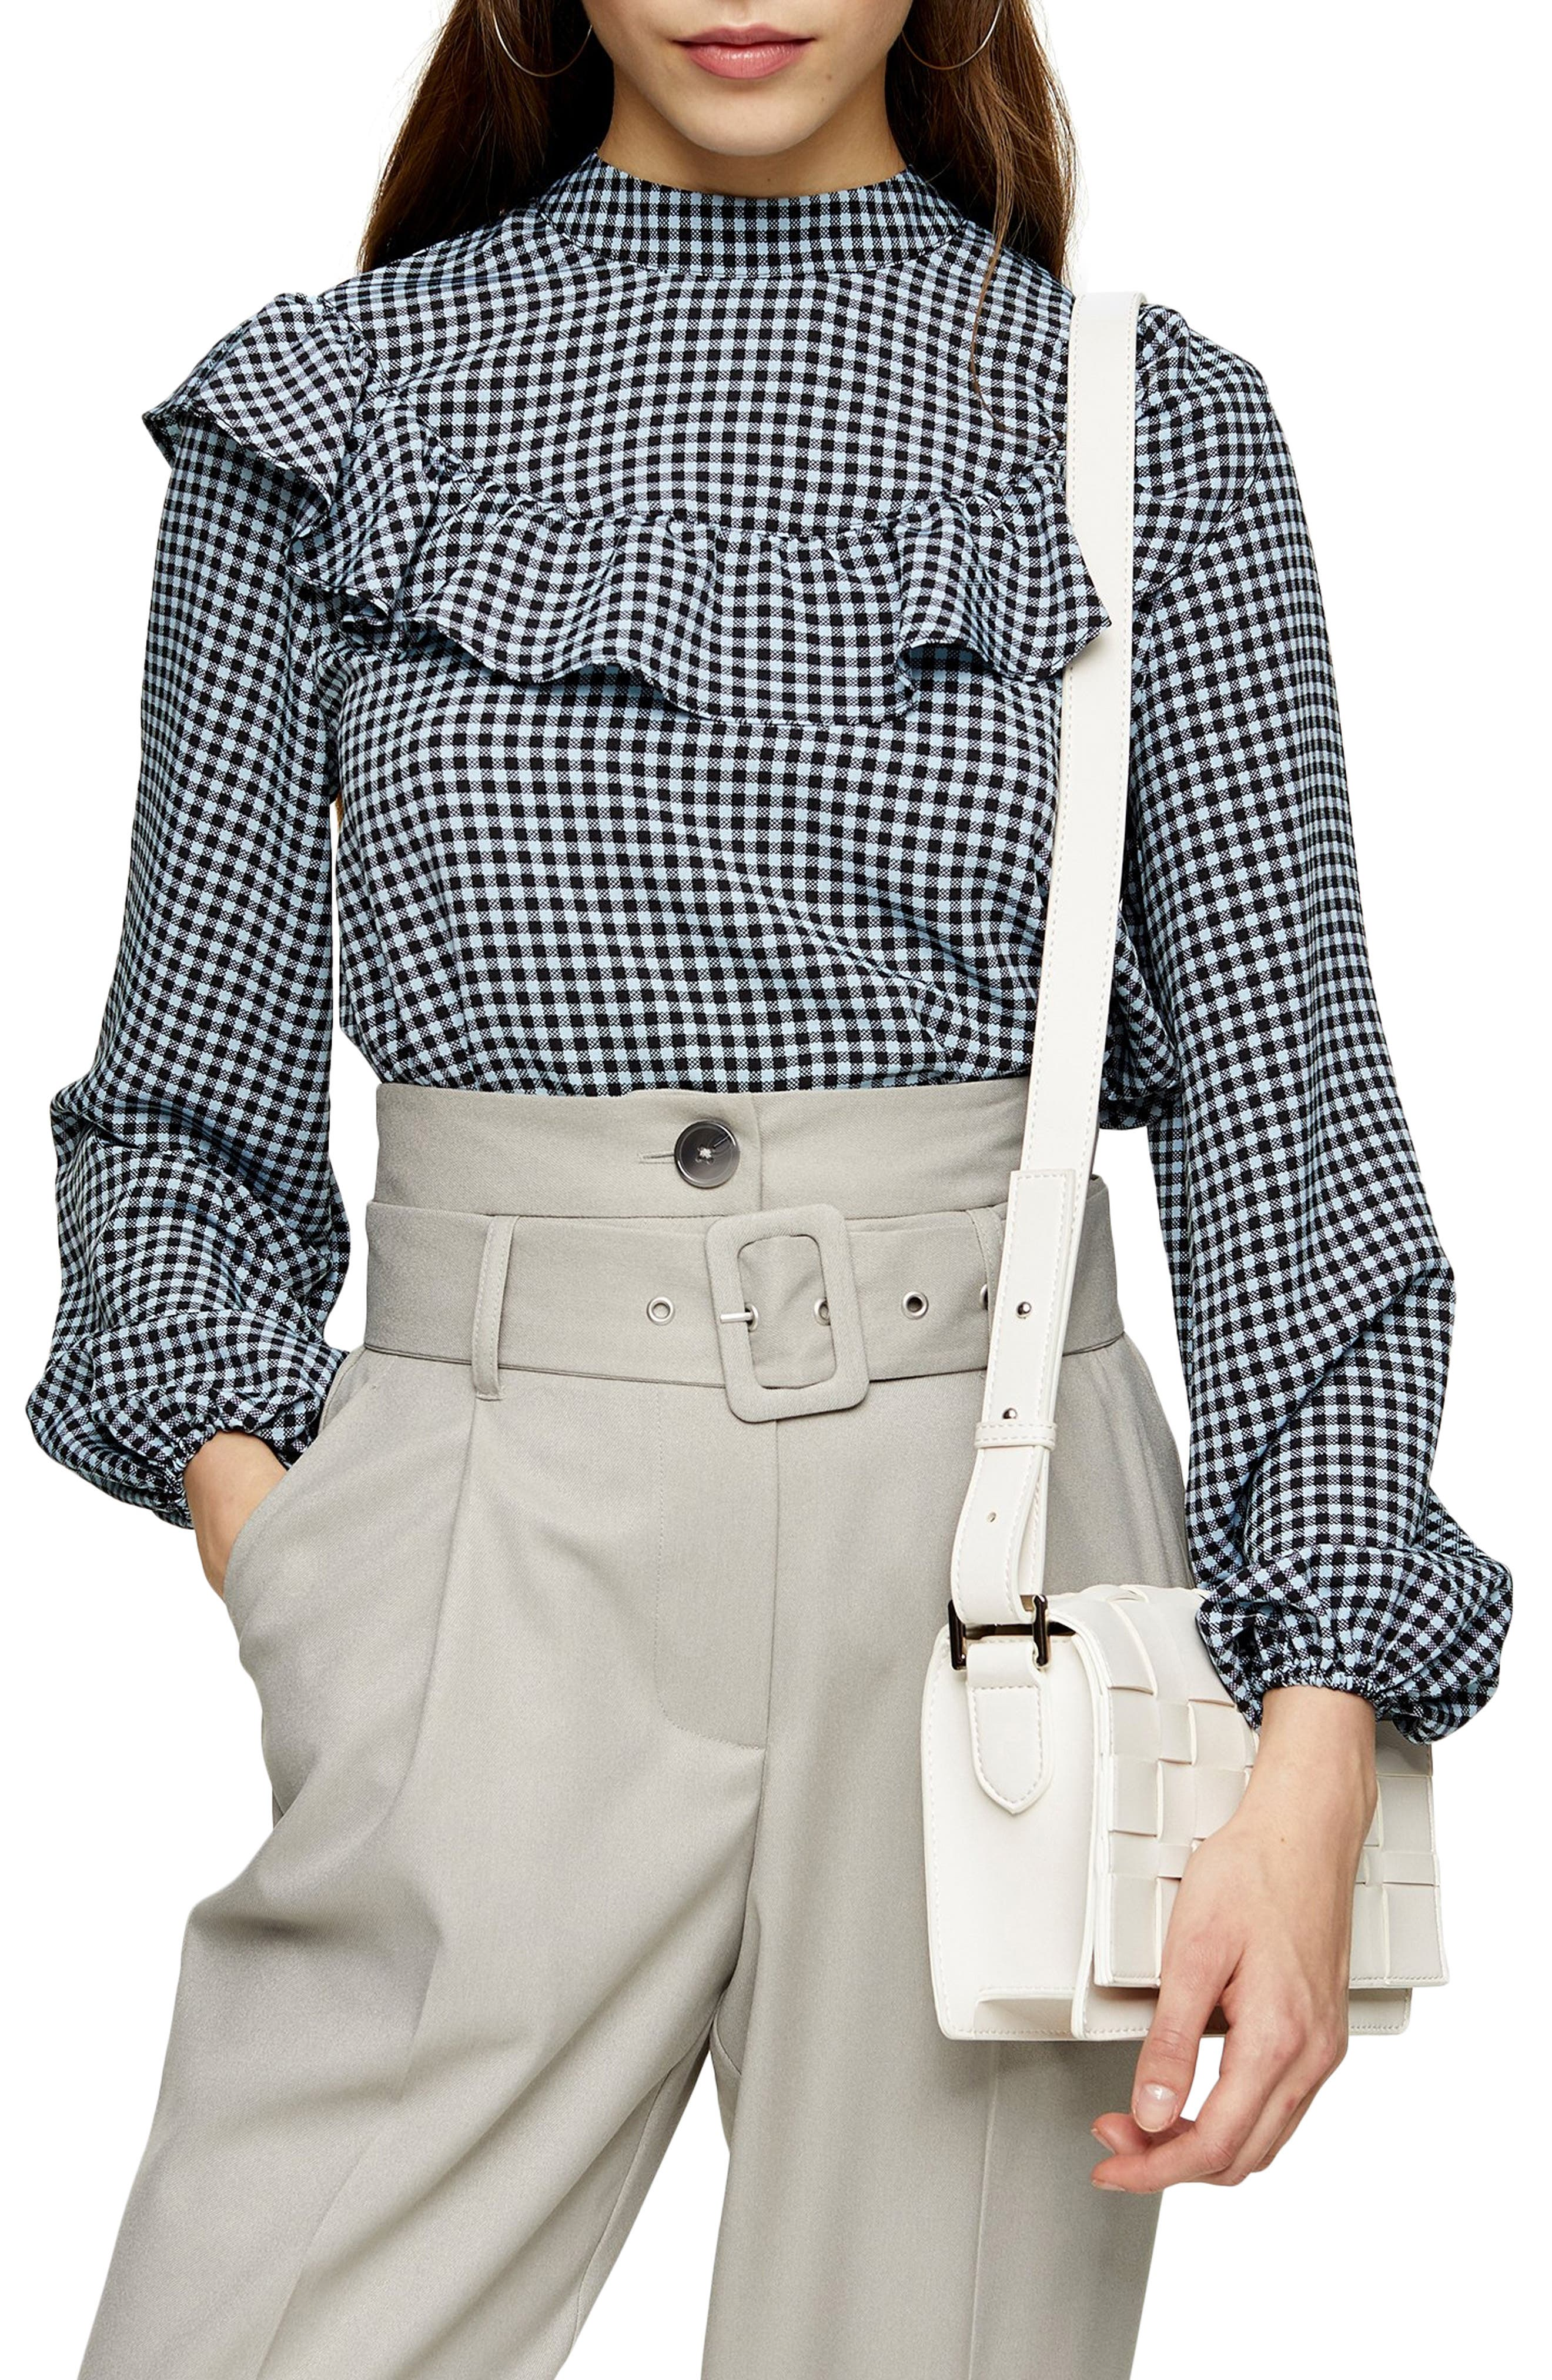 A soft ruffle frills the curved yoke of a vintage-inspired blouse patterned in fresh gingham checks. Style Name: Topshop Frill Yoke Gingham Blouse. Style Number: 6032033. Available in stores.